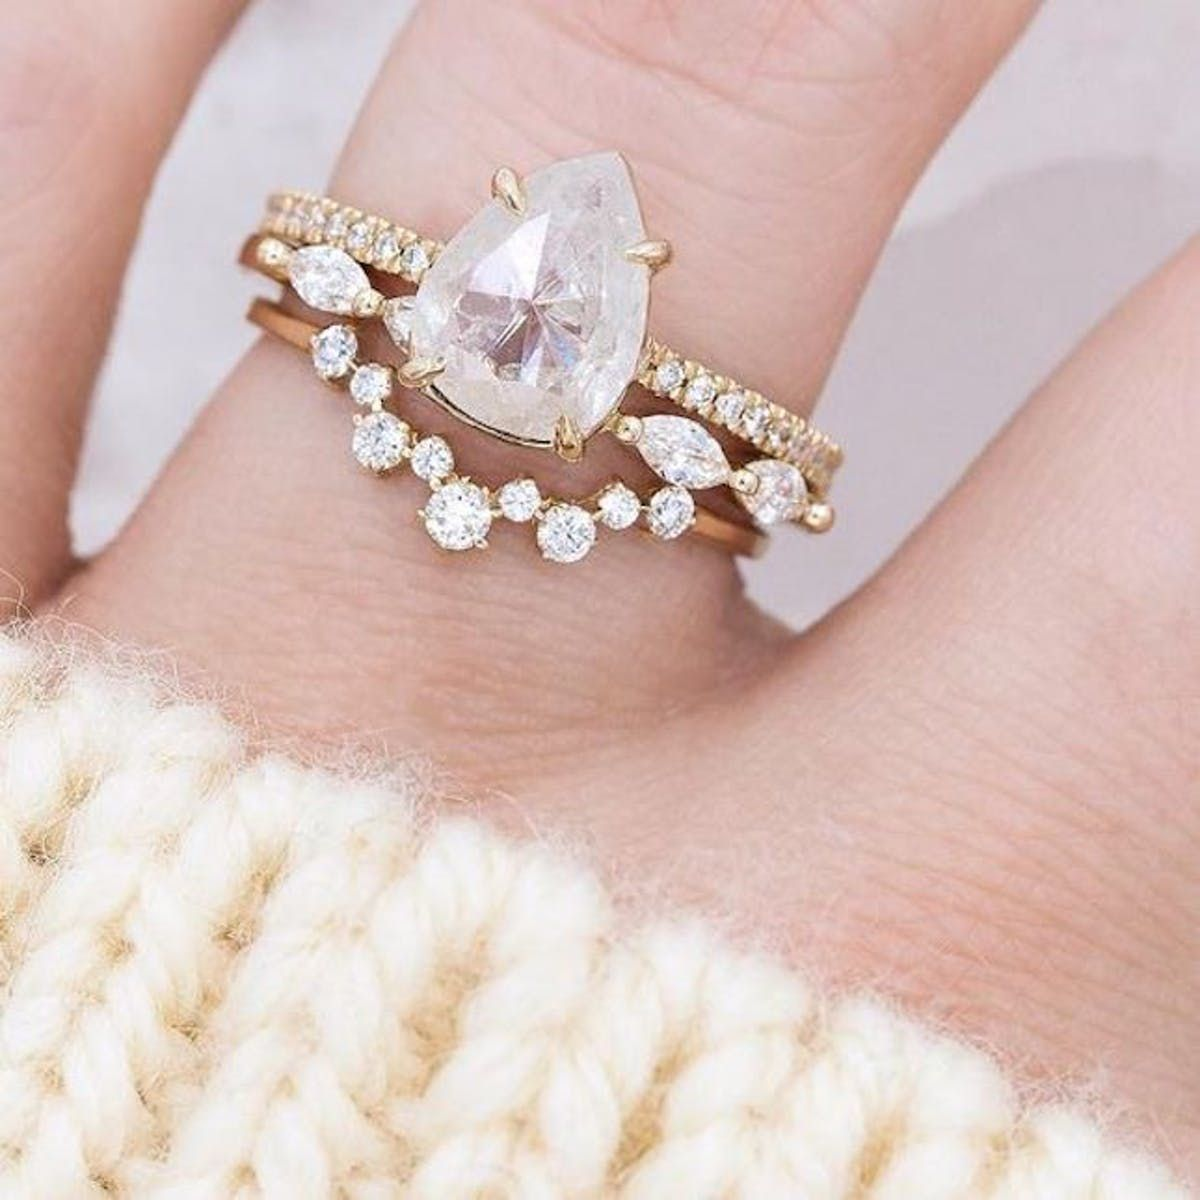 33 Unique Engagement Rings Brides Are Pinning Like Crazy ...